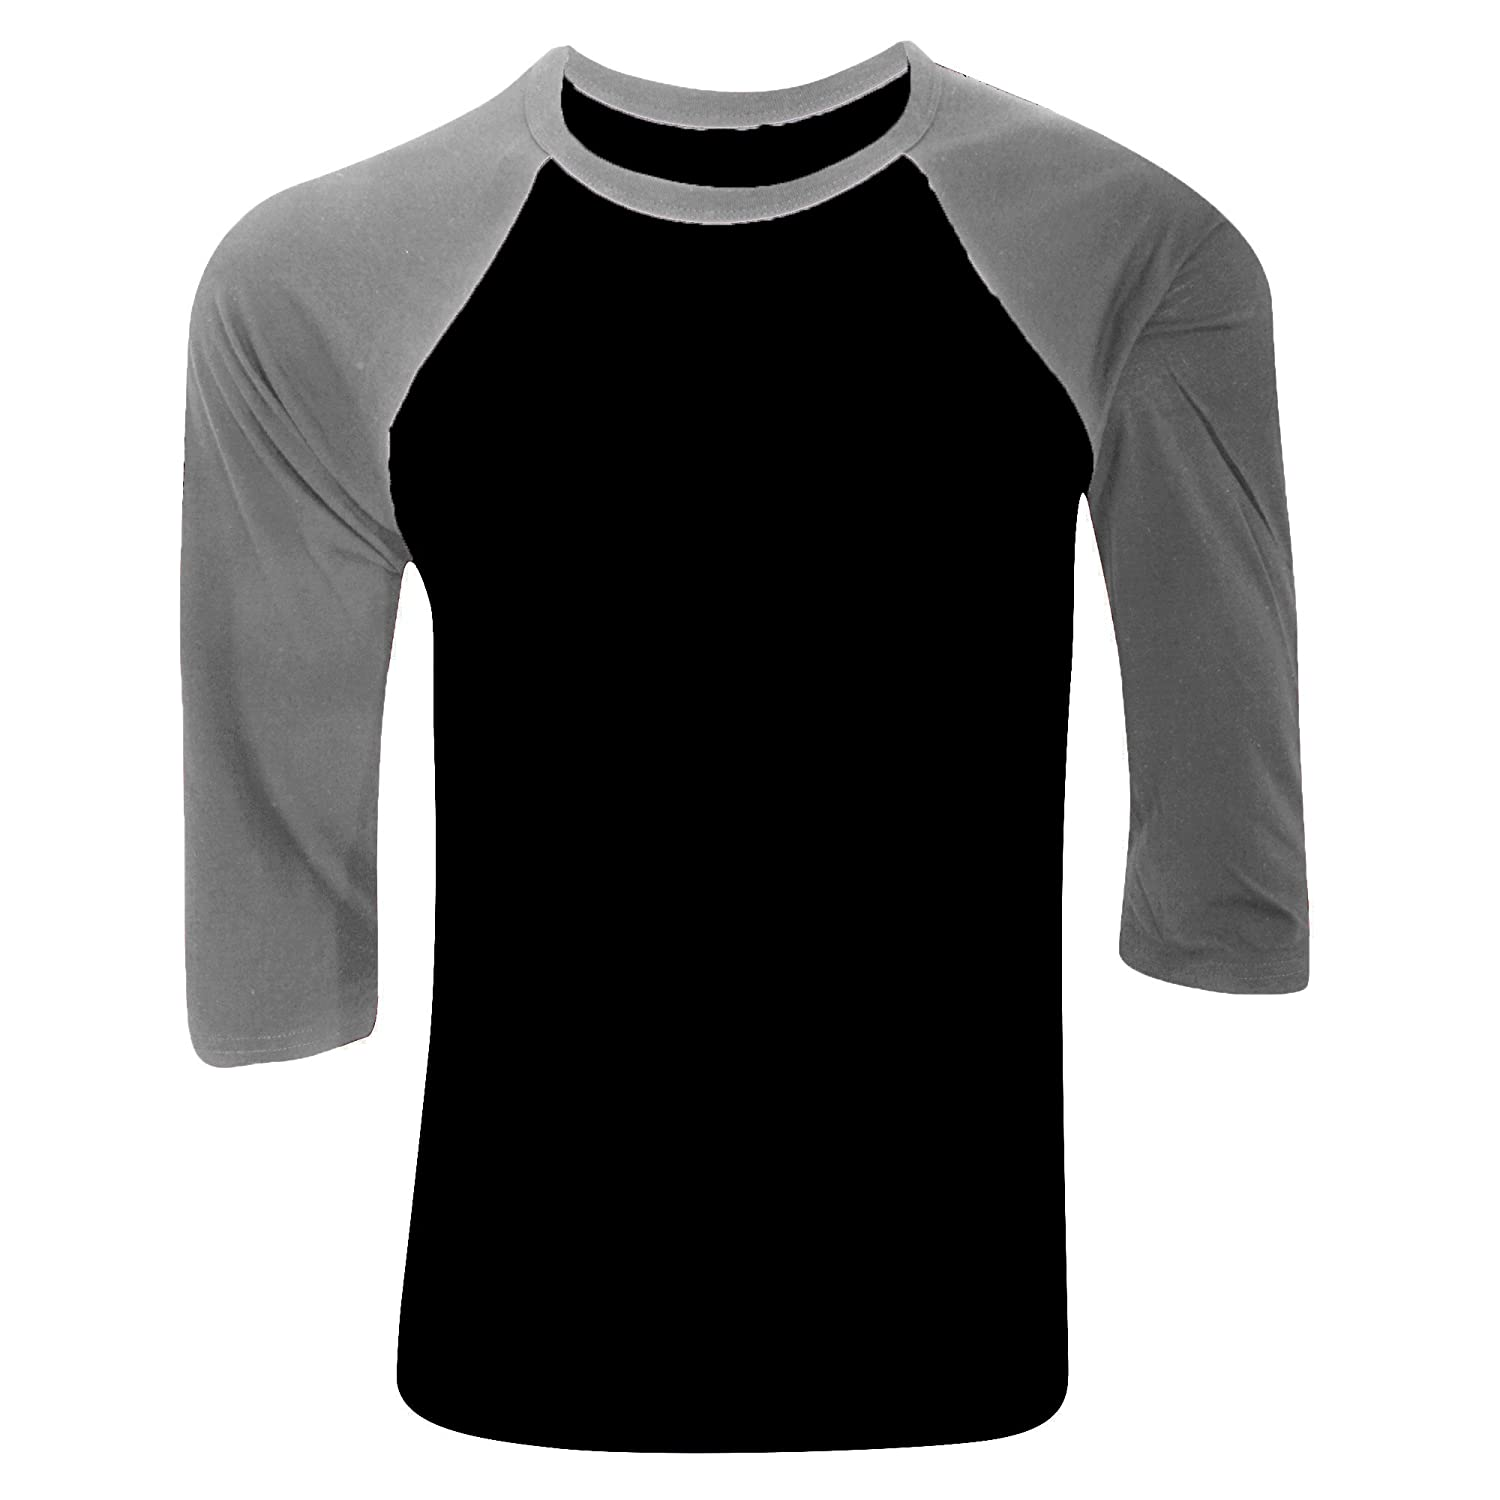 Pro tag 100 cotton 3 4 sleeve raglan baseball shirt in white black - Canvas Mens 3 4 Sleeve Baseball T Shirt